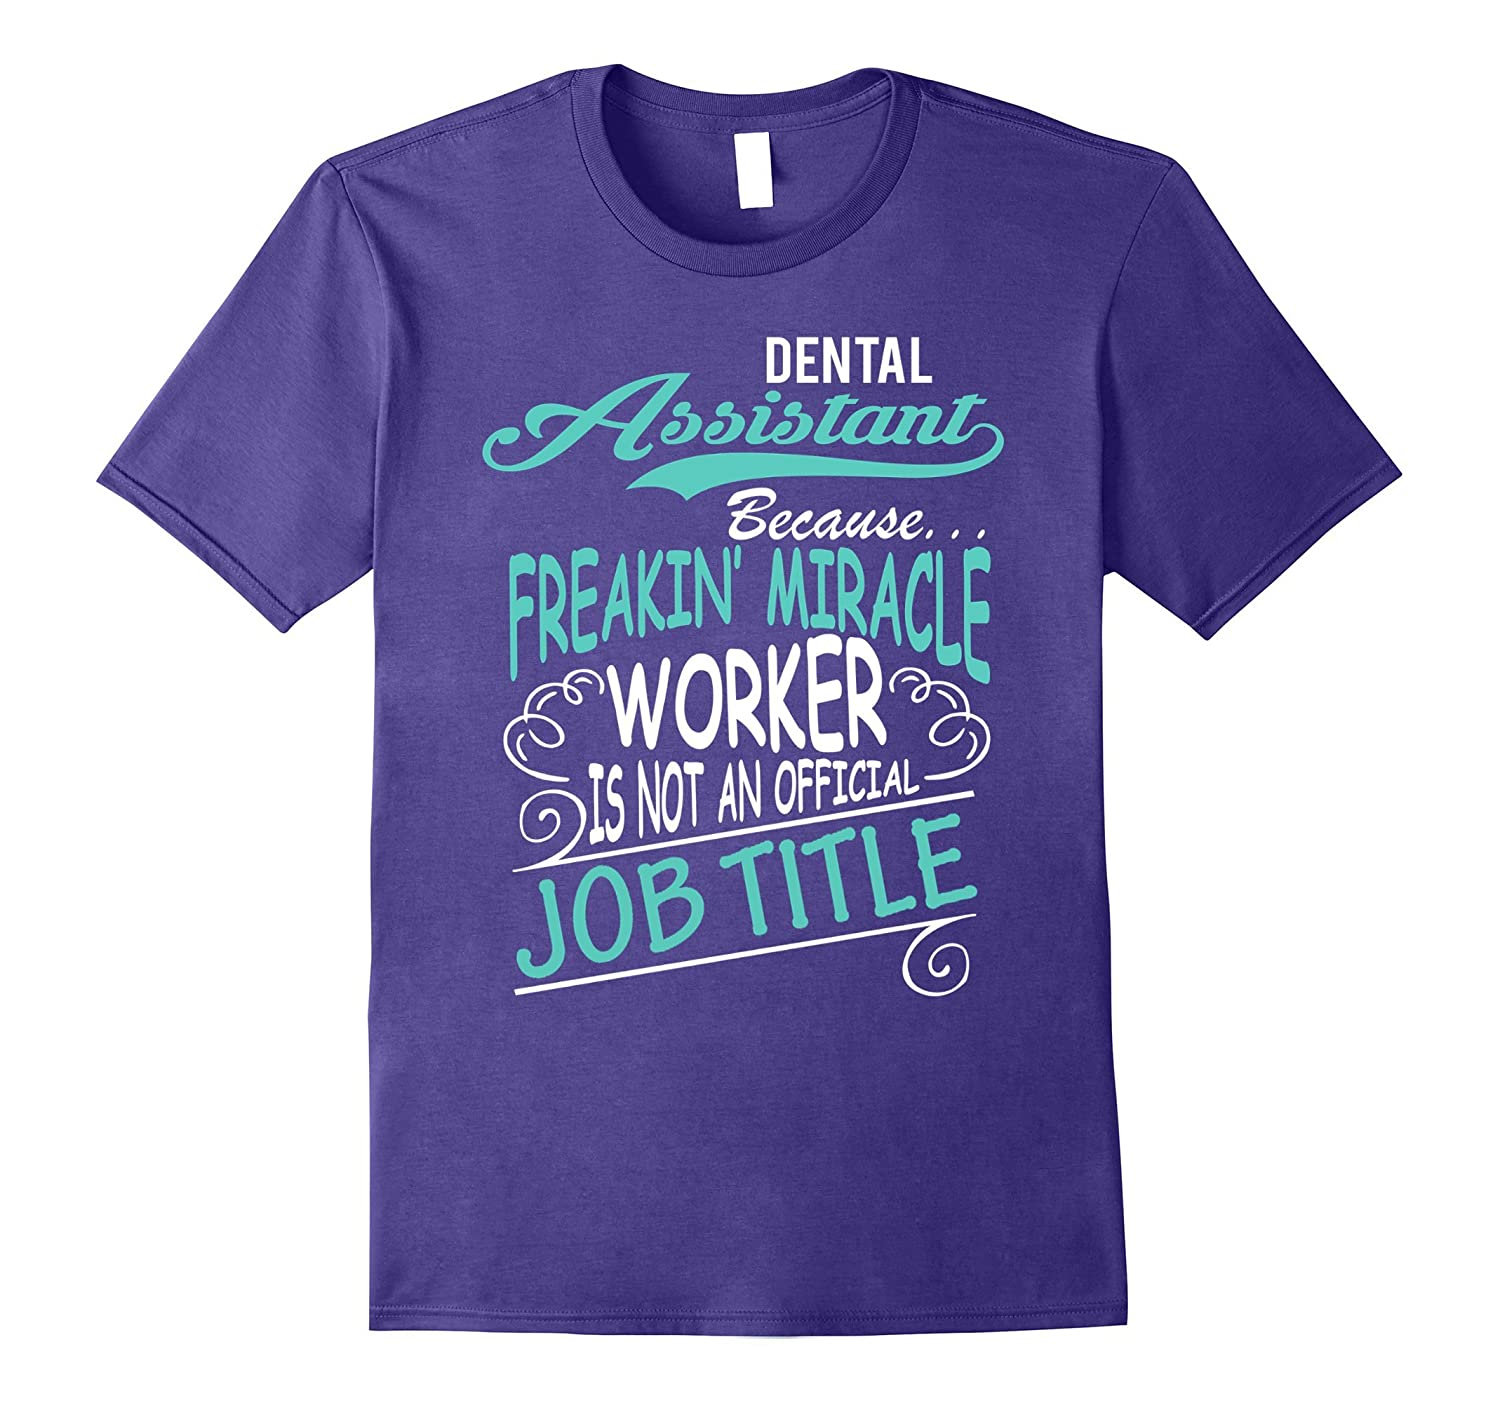 DENTAL ASSISTANT – Freakin Miracle Worker Job Title T-Shirt